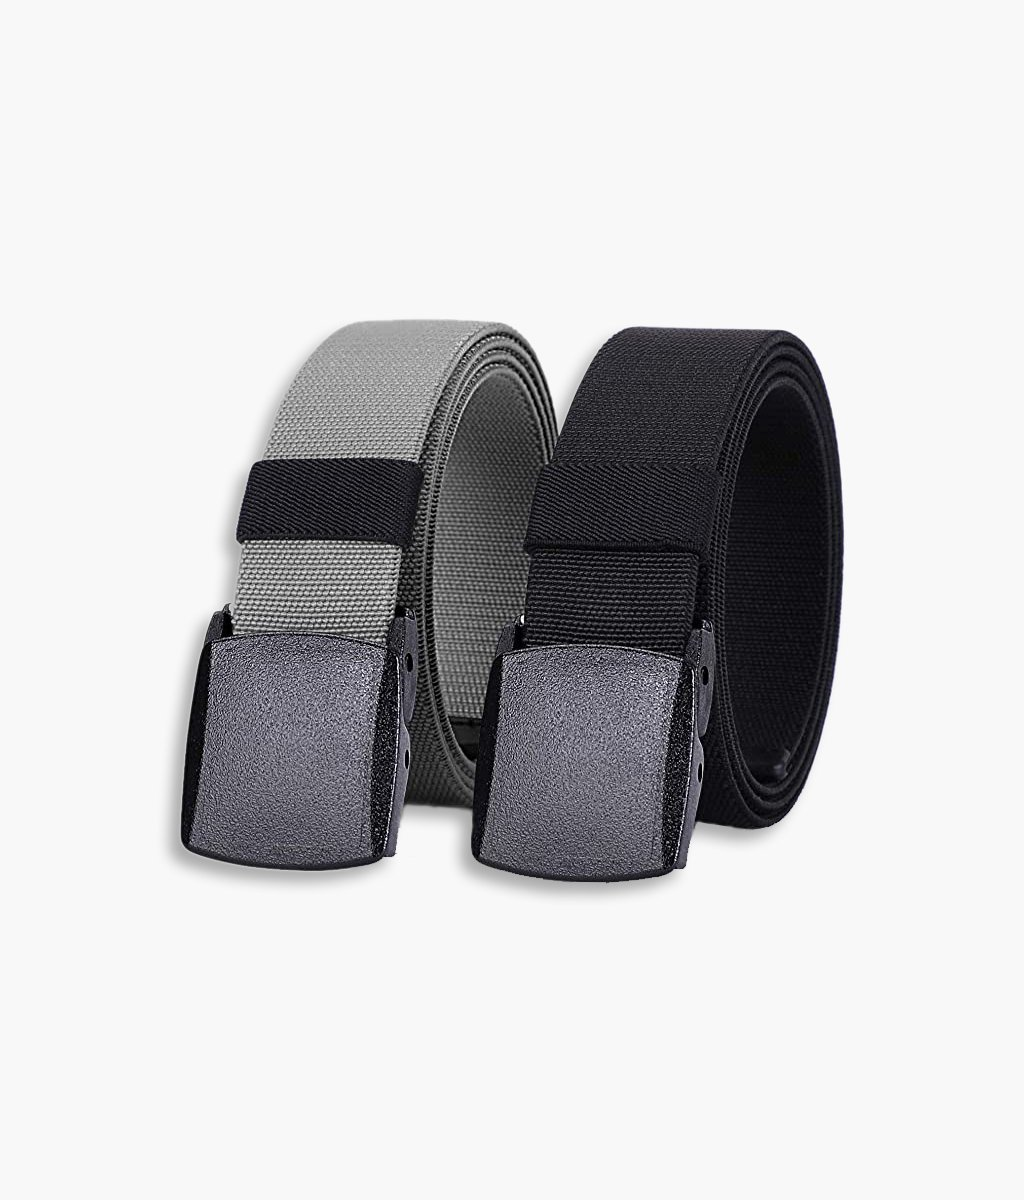 Mens Nylon Belt 51 inch Elastic Stretch Featured Image